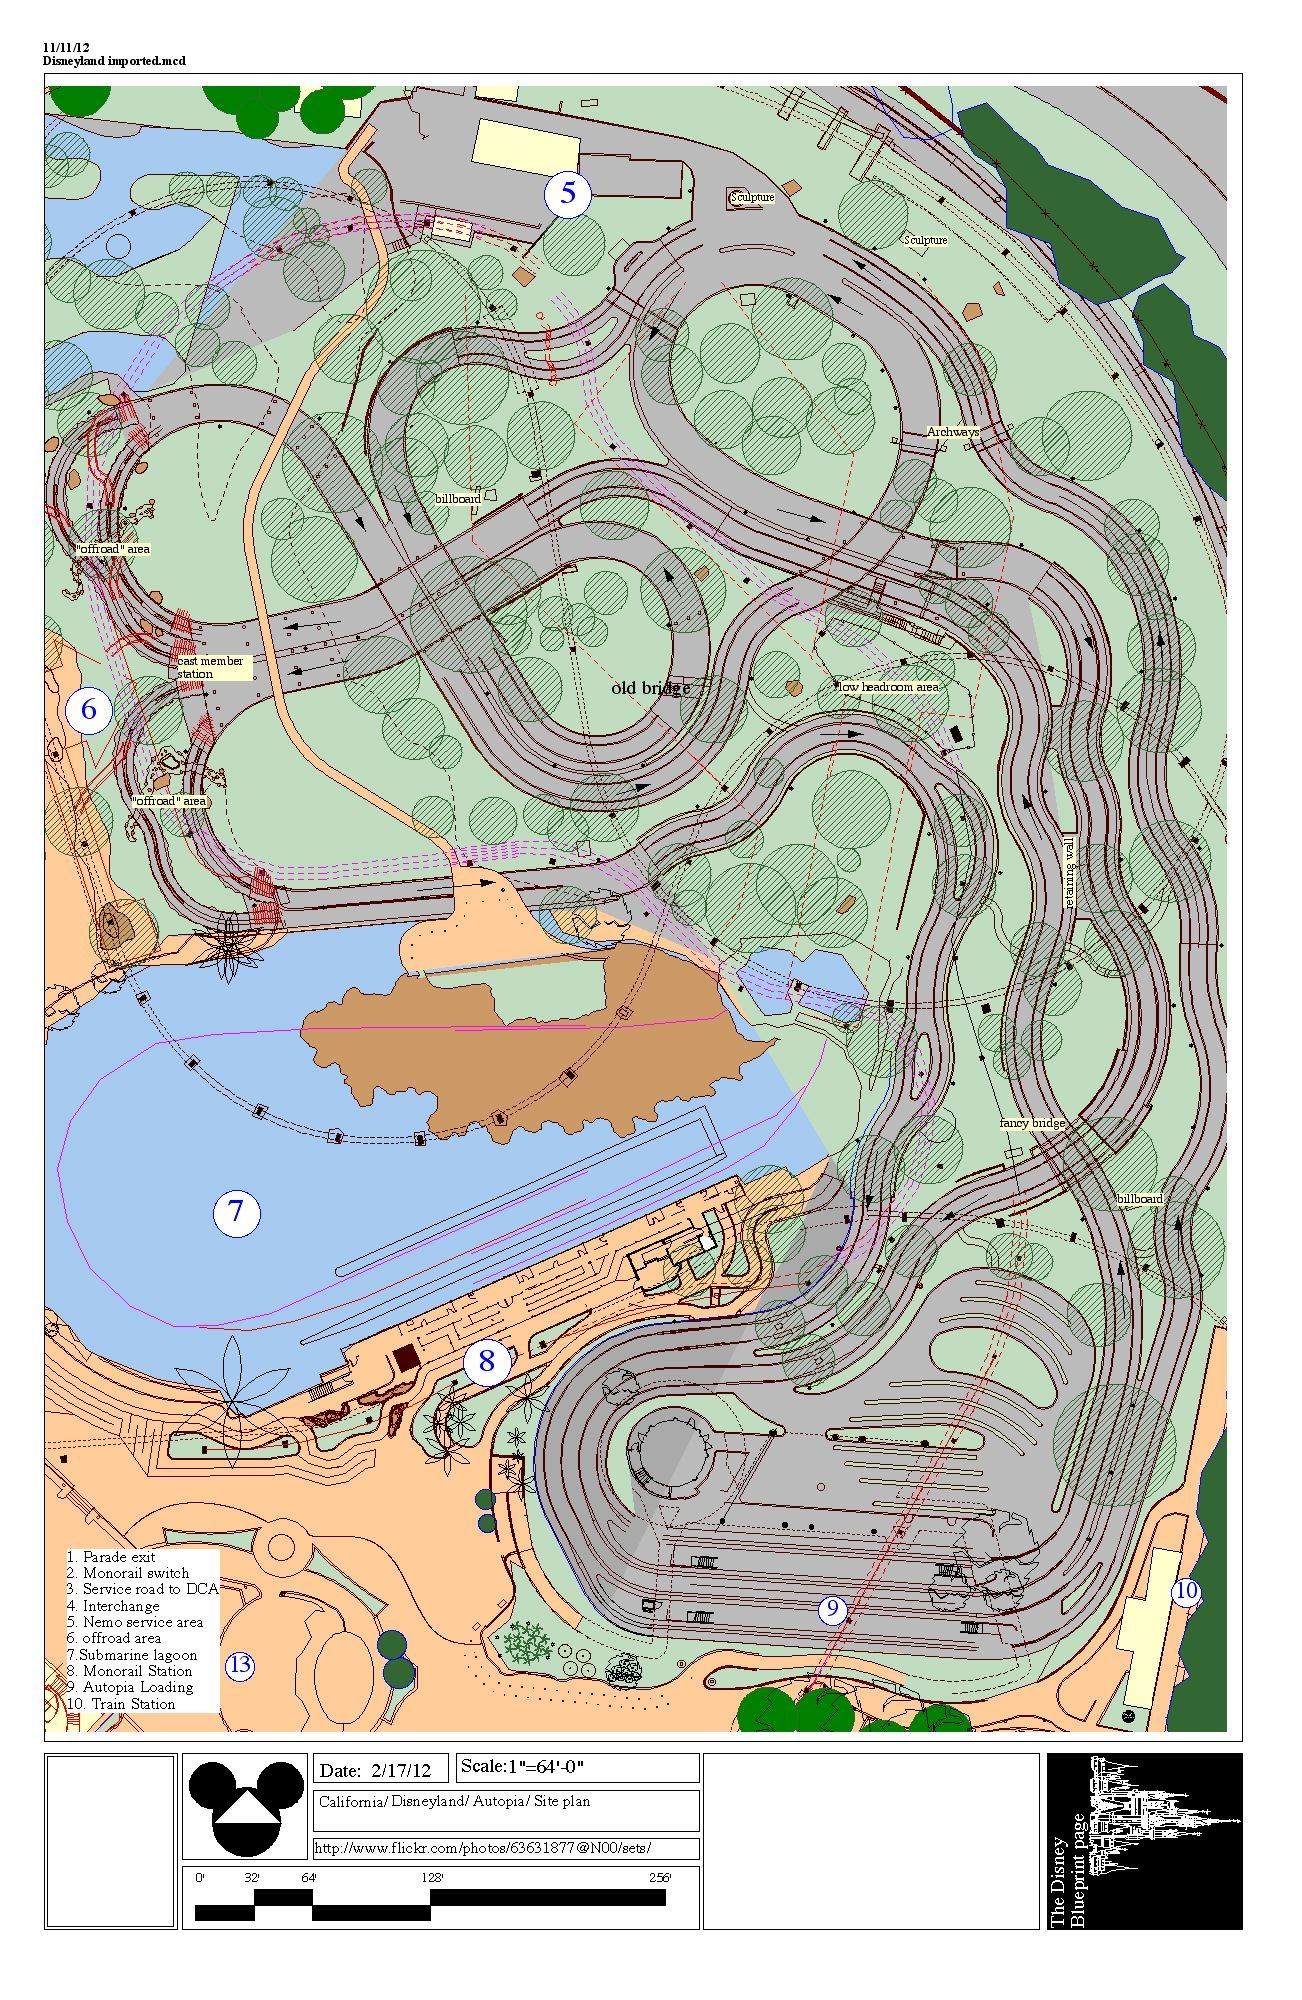 Map Of California Disney.Disneyland Autopia Layout Google Search Disneyland Disneyland